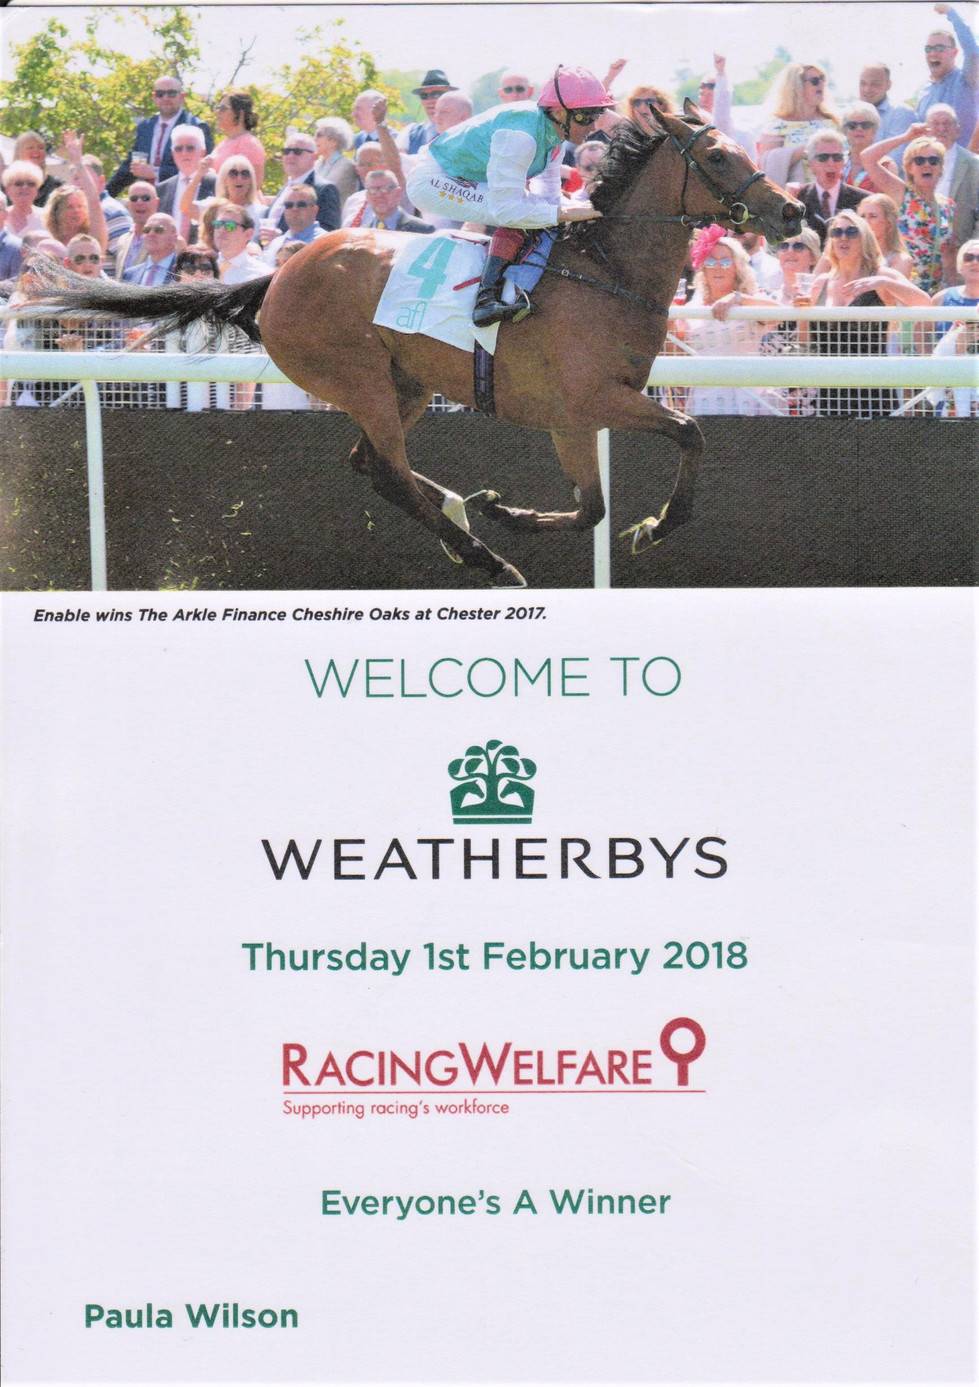 Trip to Weatherbys, Wellingborough on Feb 1st 2018